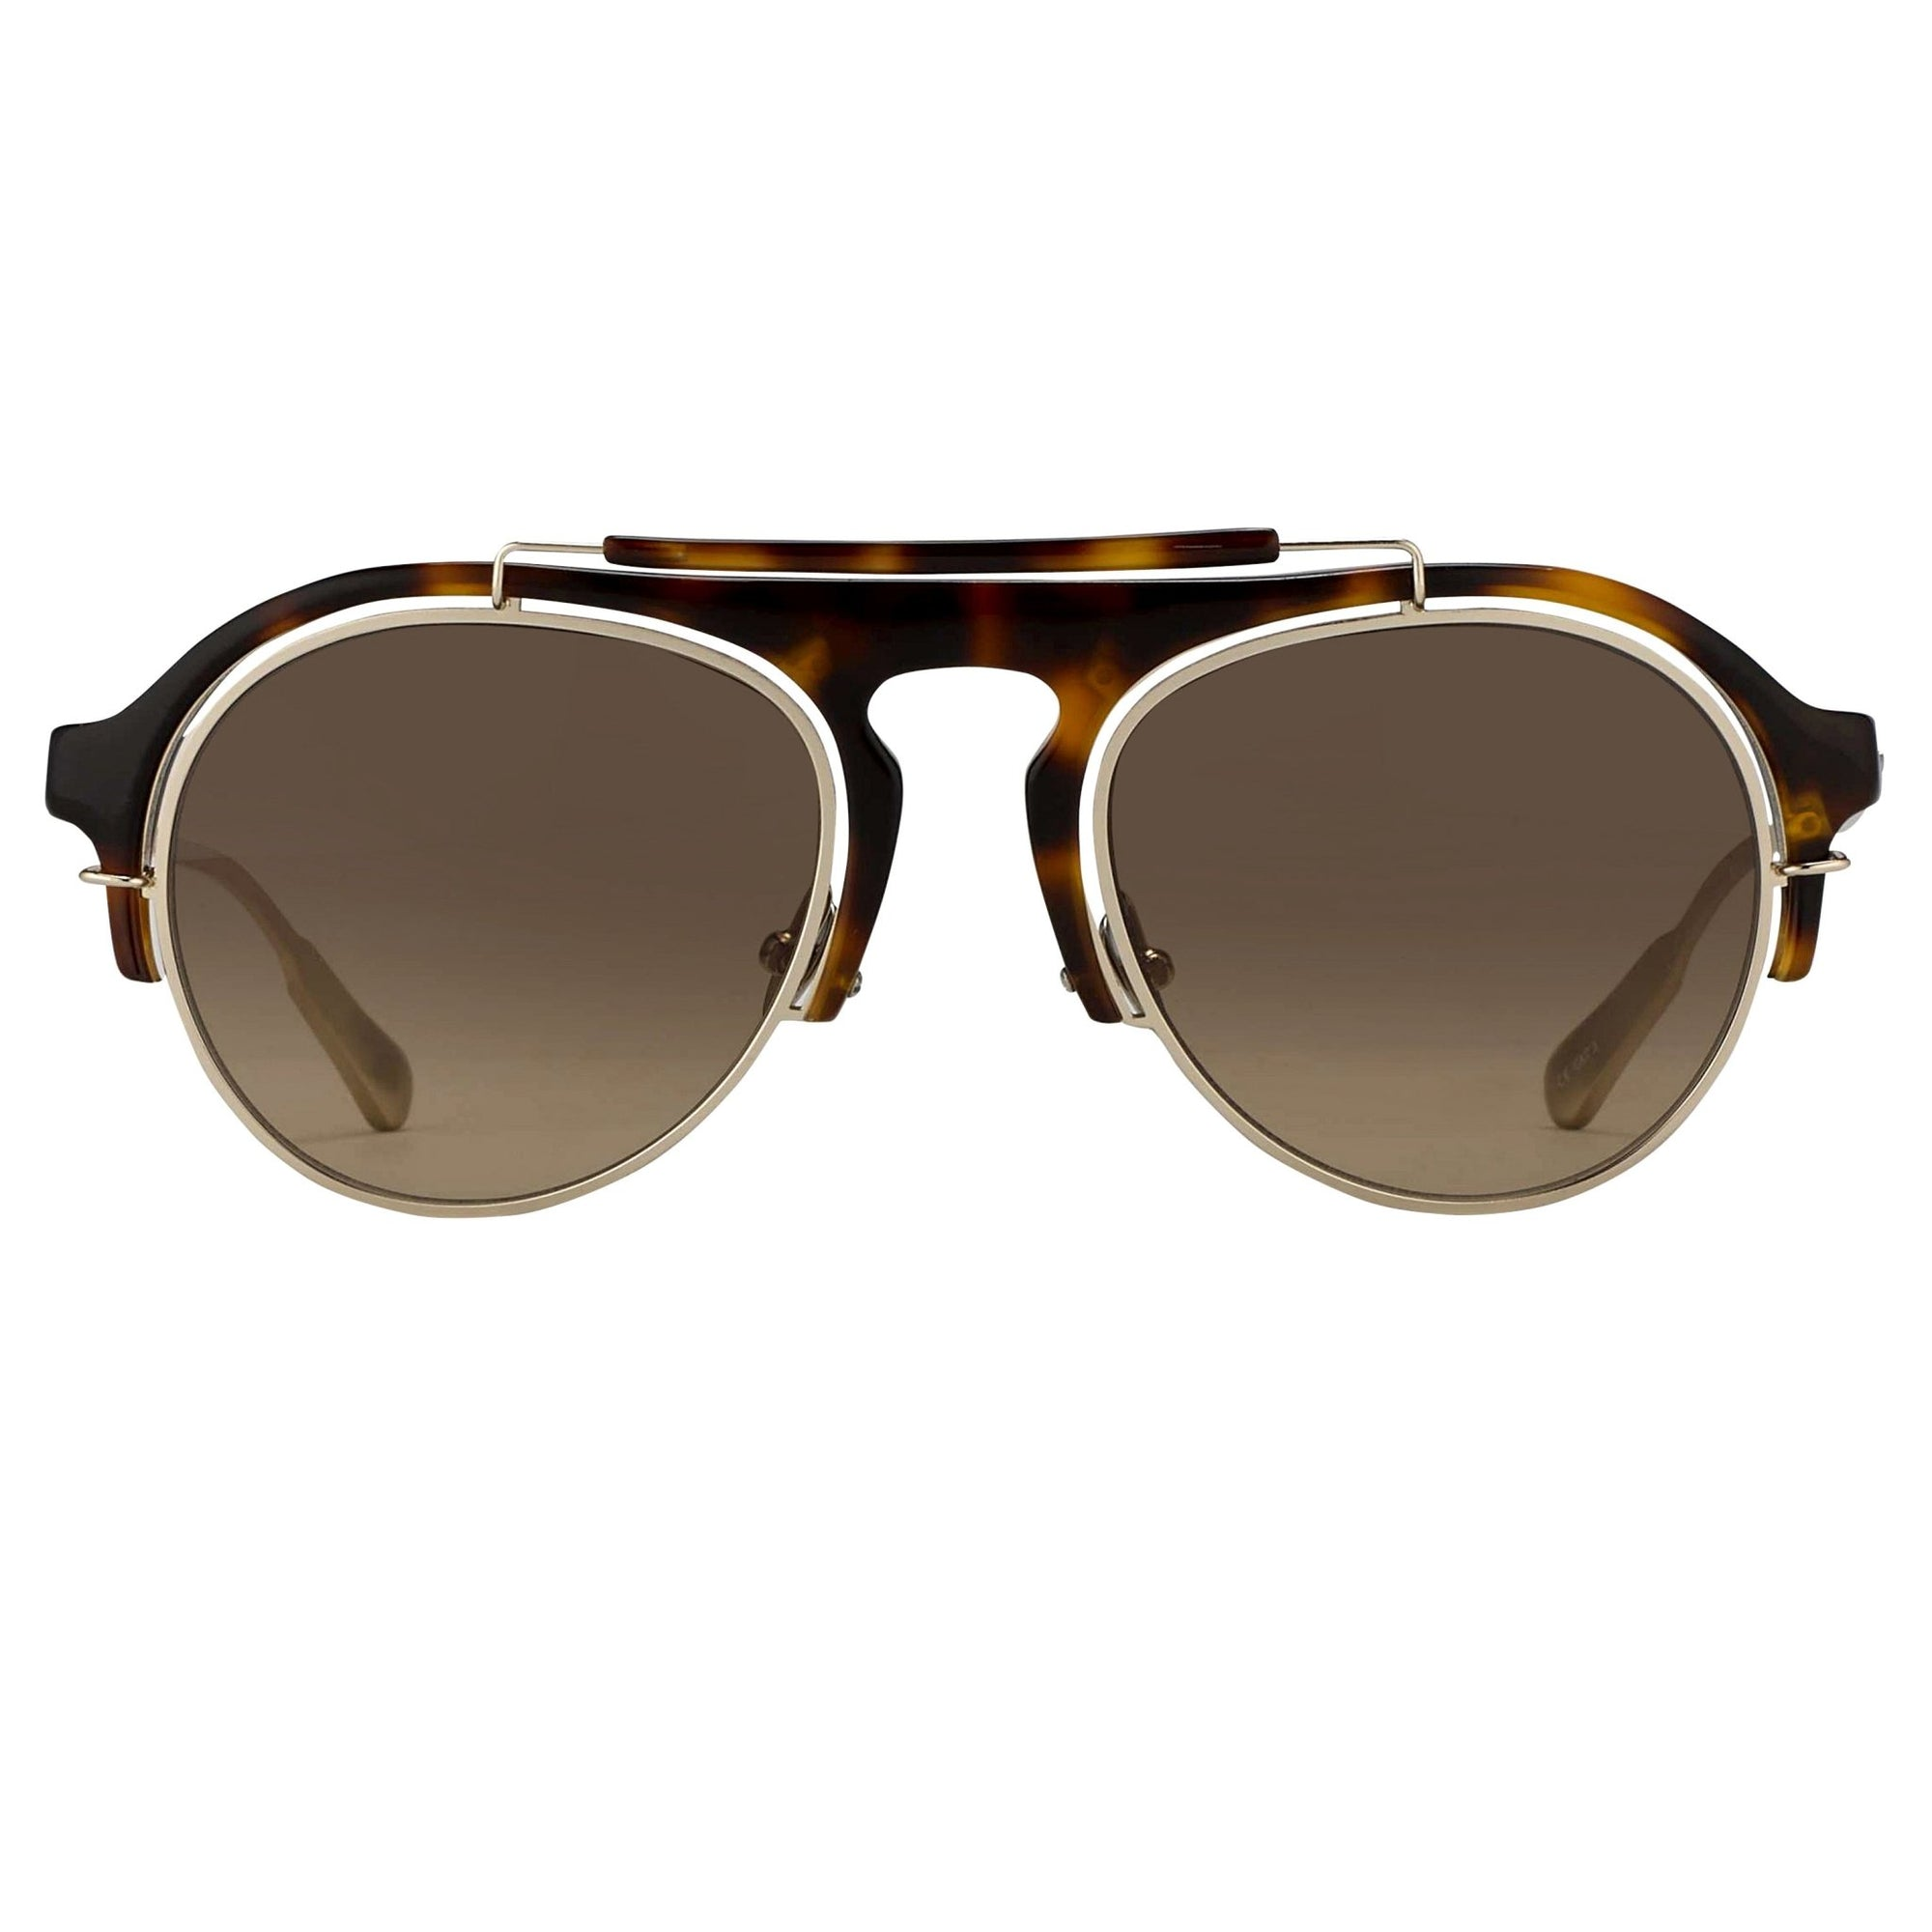 Kris Van Assche Unisex Sunglasses Tortoise Shell Antique Gold and Brown Graduated Lenses Category 2 - KVA65C2SUN - Watches & Crystals